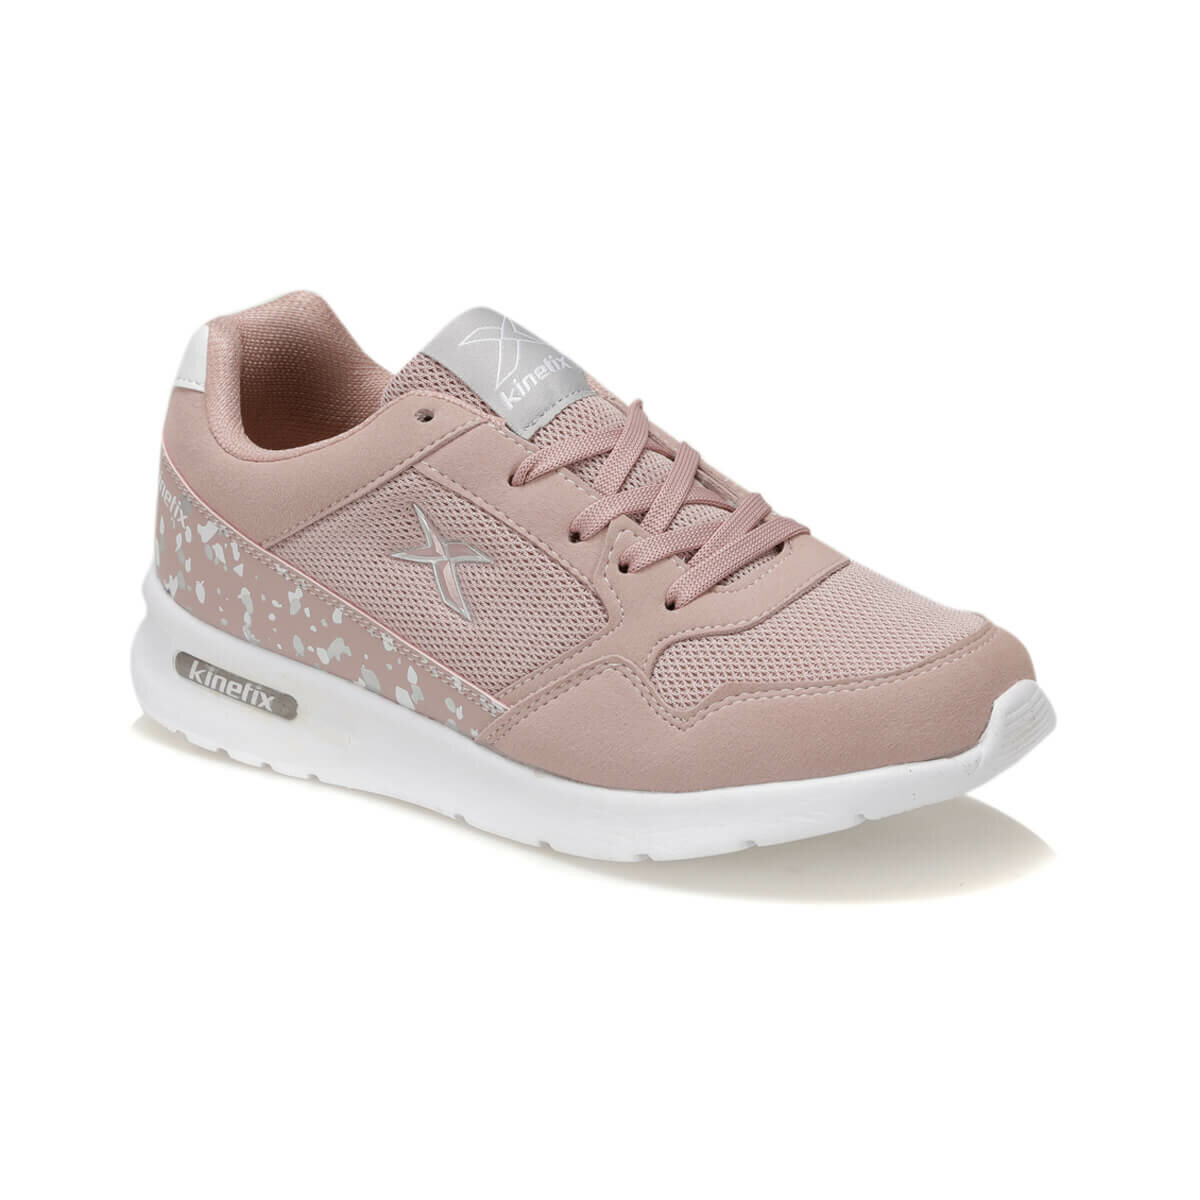 FLO JONET W Powder Women 'S Sneaker Shoes KINETIX